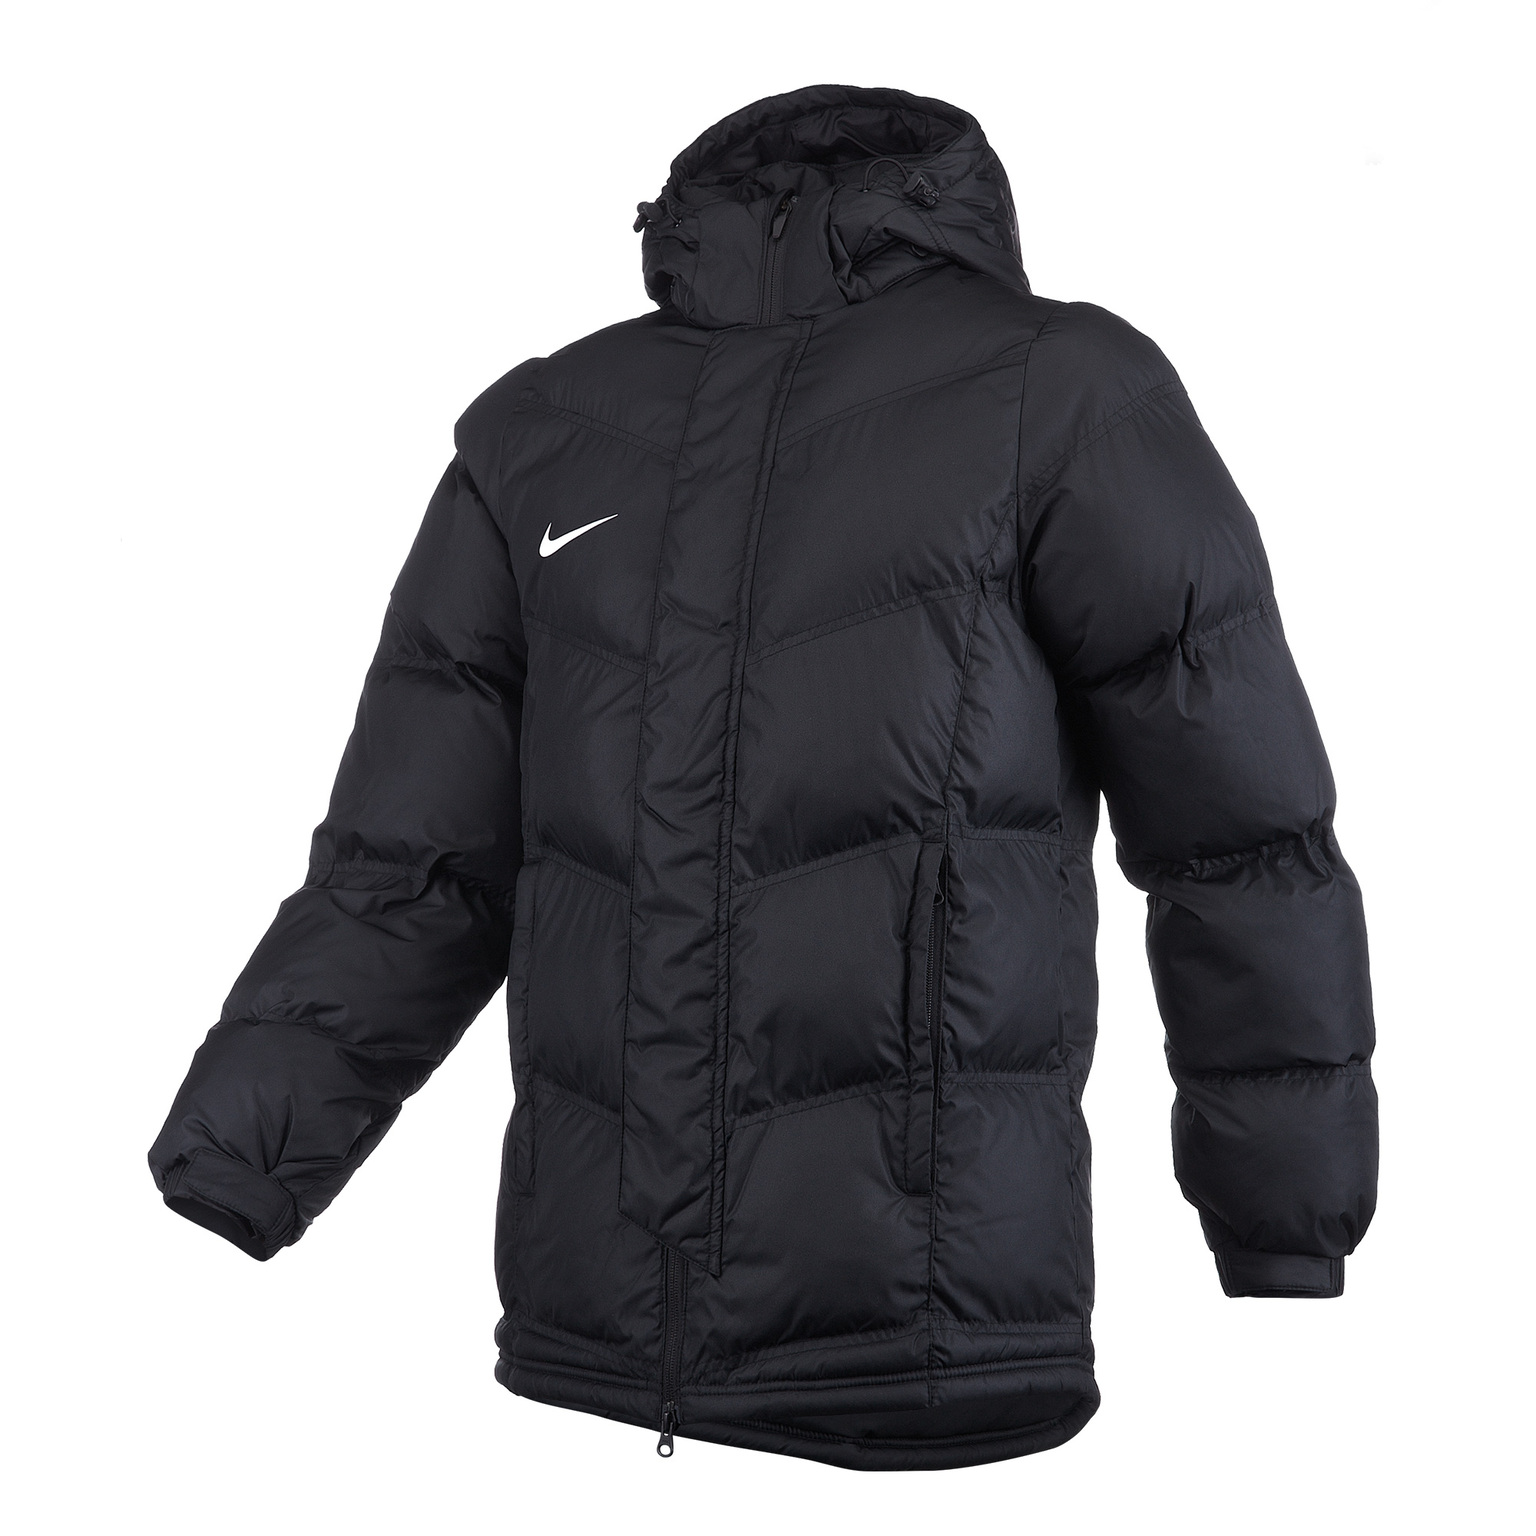 цена Куртки/Пуховики Nike Куртка Nike Team Winter JKT 645484-010 онлайн в 2017 году